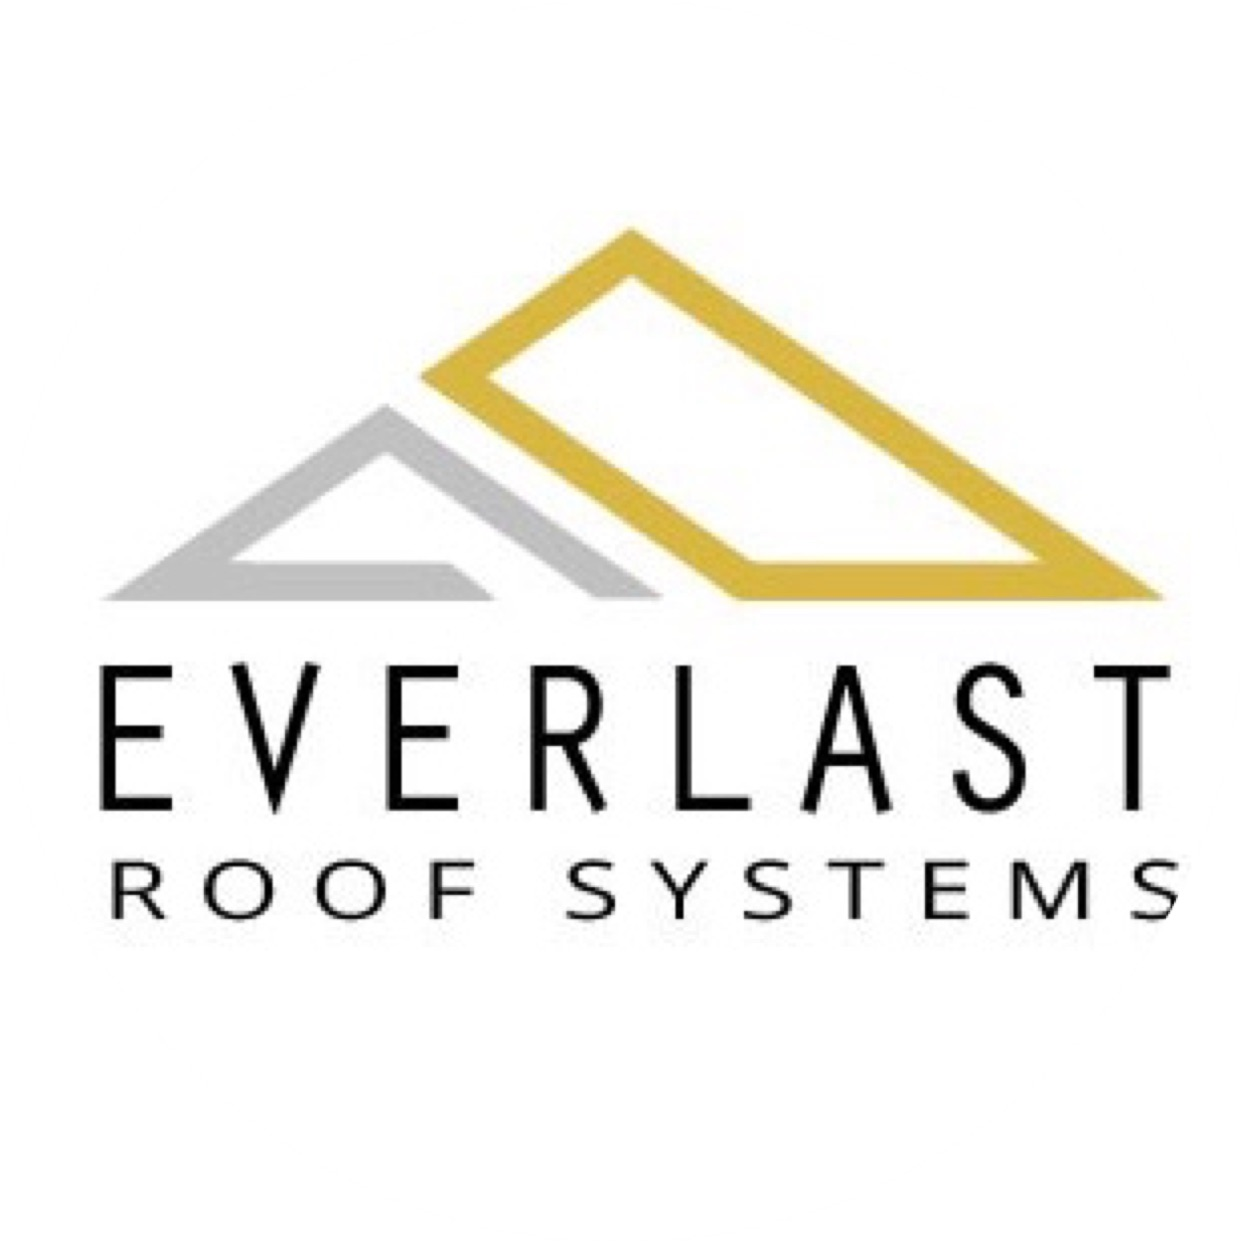 Everlast Roof Systems